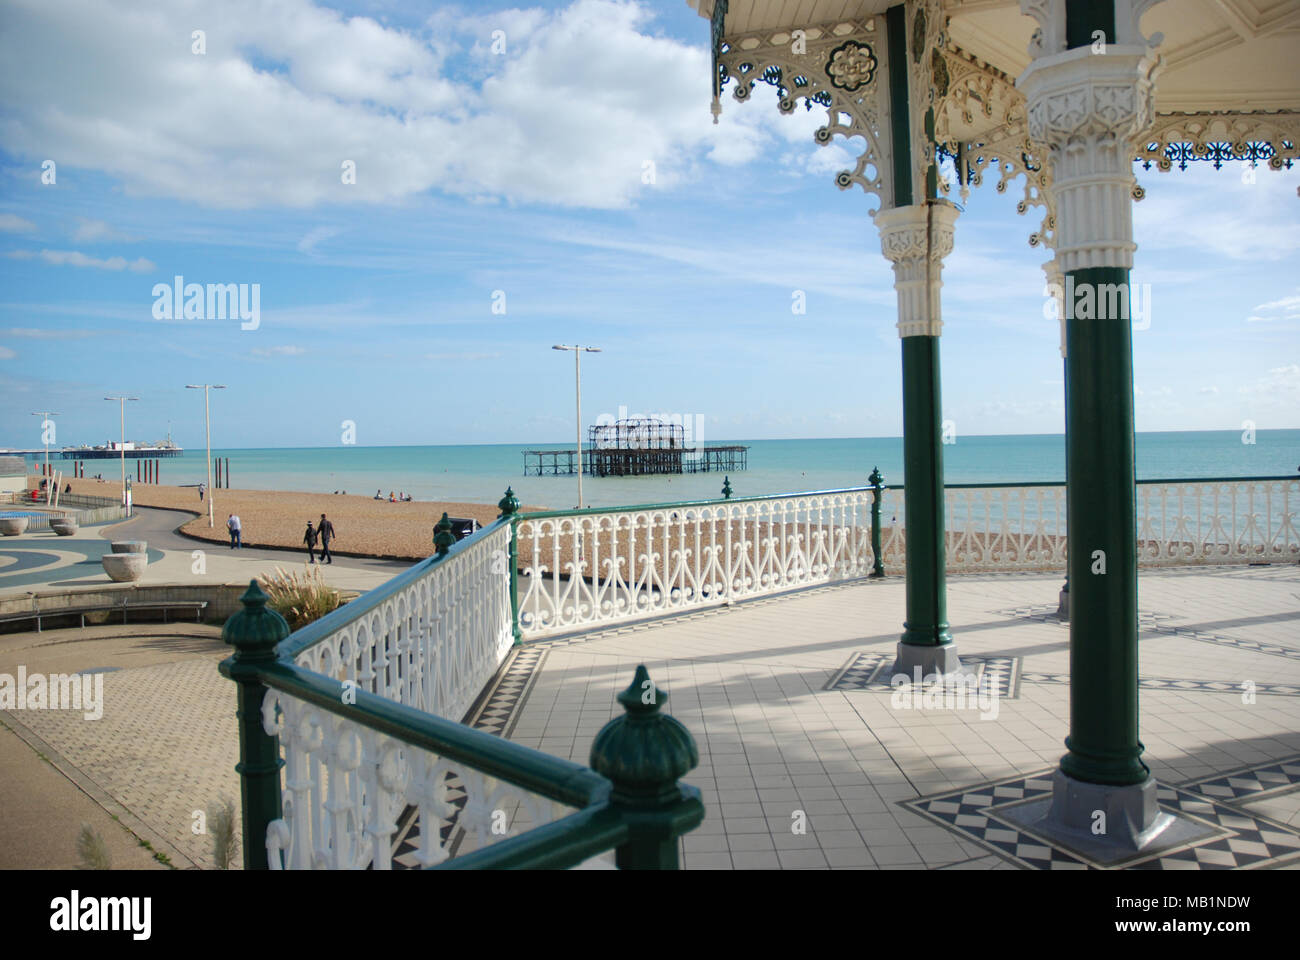 The side view of the Brighton Bandstand with the view of The West pier in the background as well as a partial far off view of Brighton Pier - Stock Image